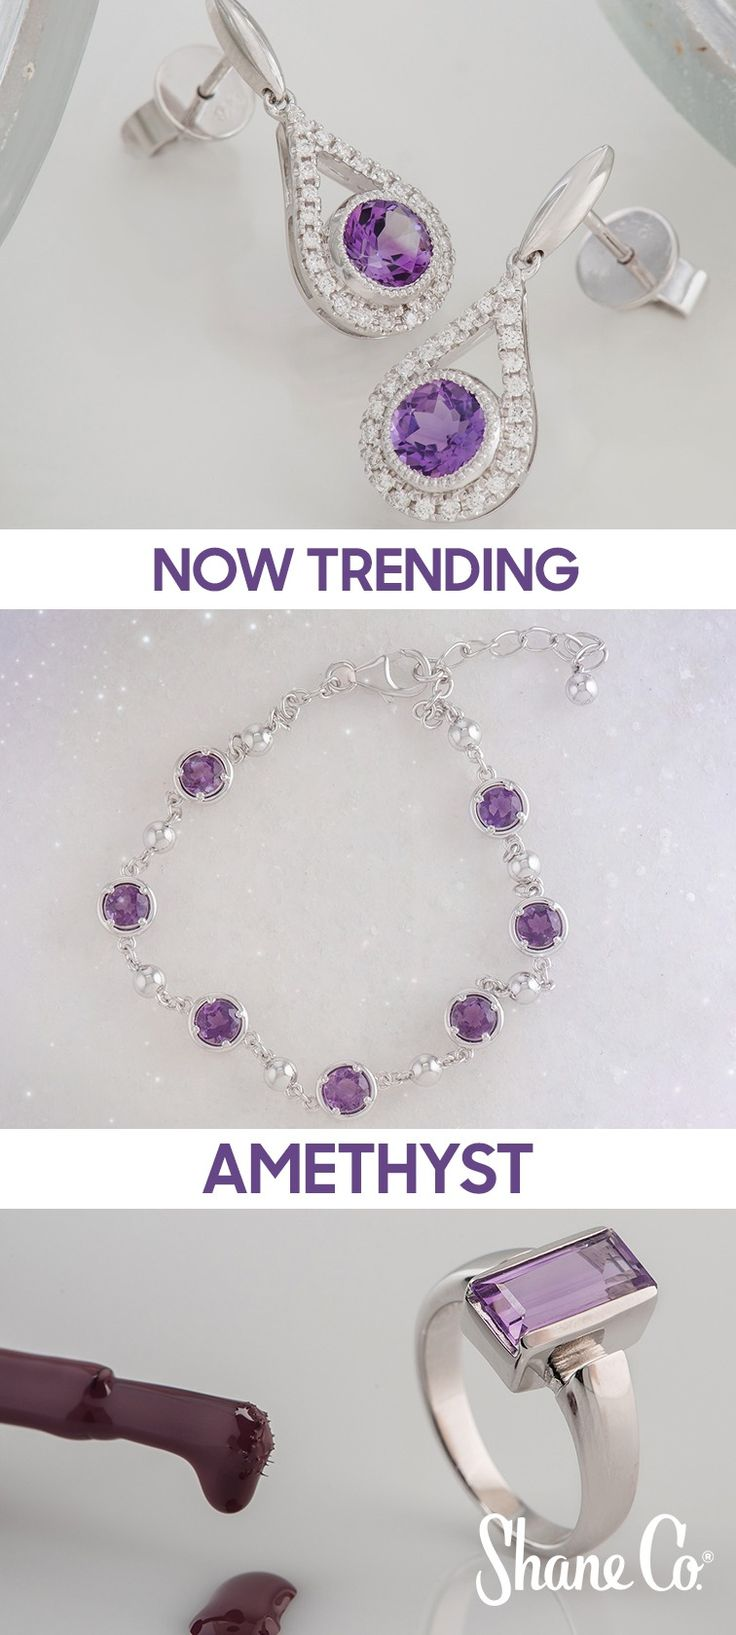 February is the perfect time to add trendy amethyst jewelry to your collection. Shop the many exclusive styles available at Shane Co. Everything ships for free!